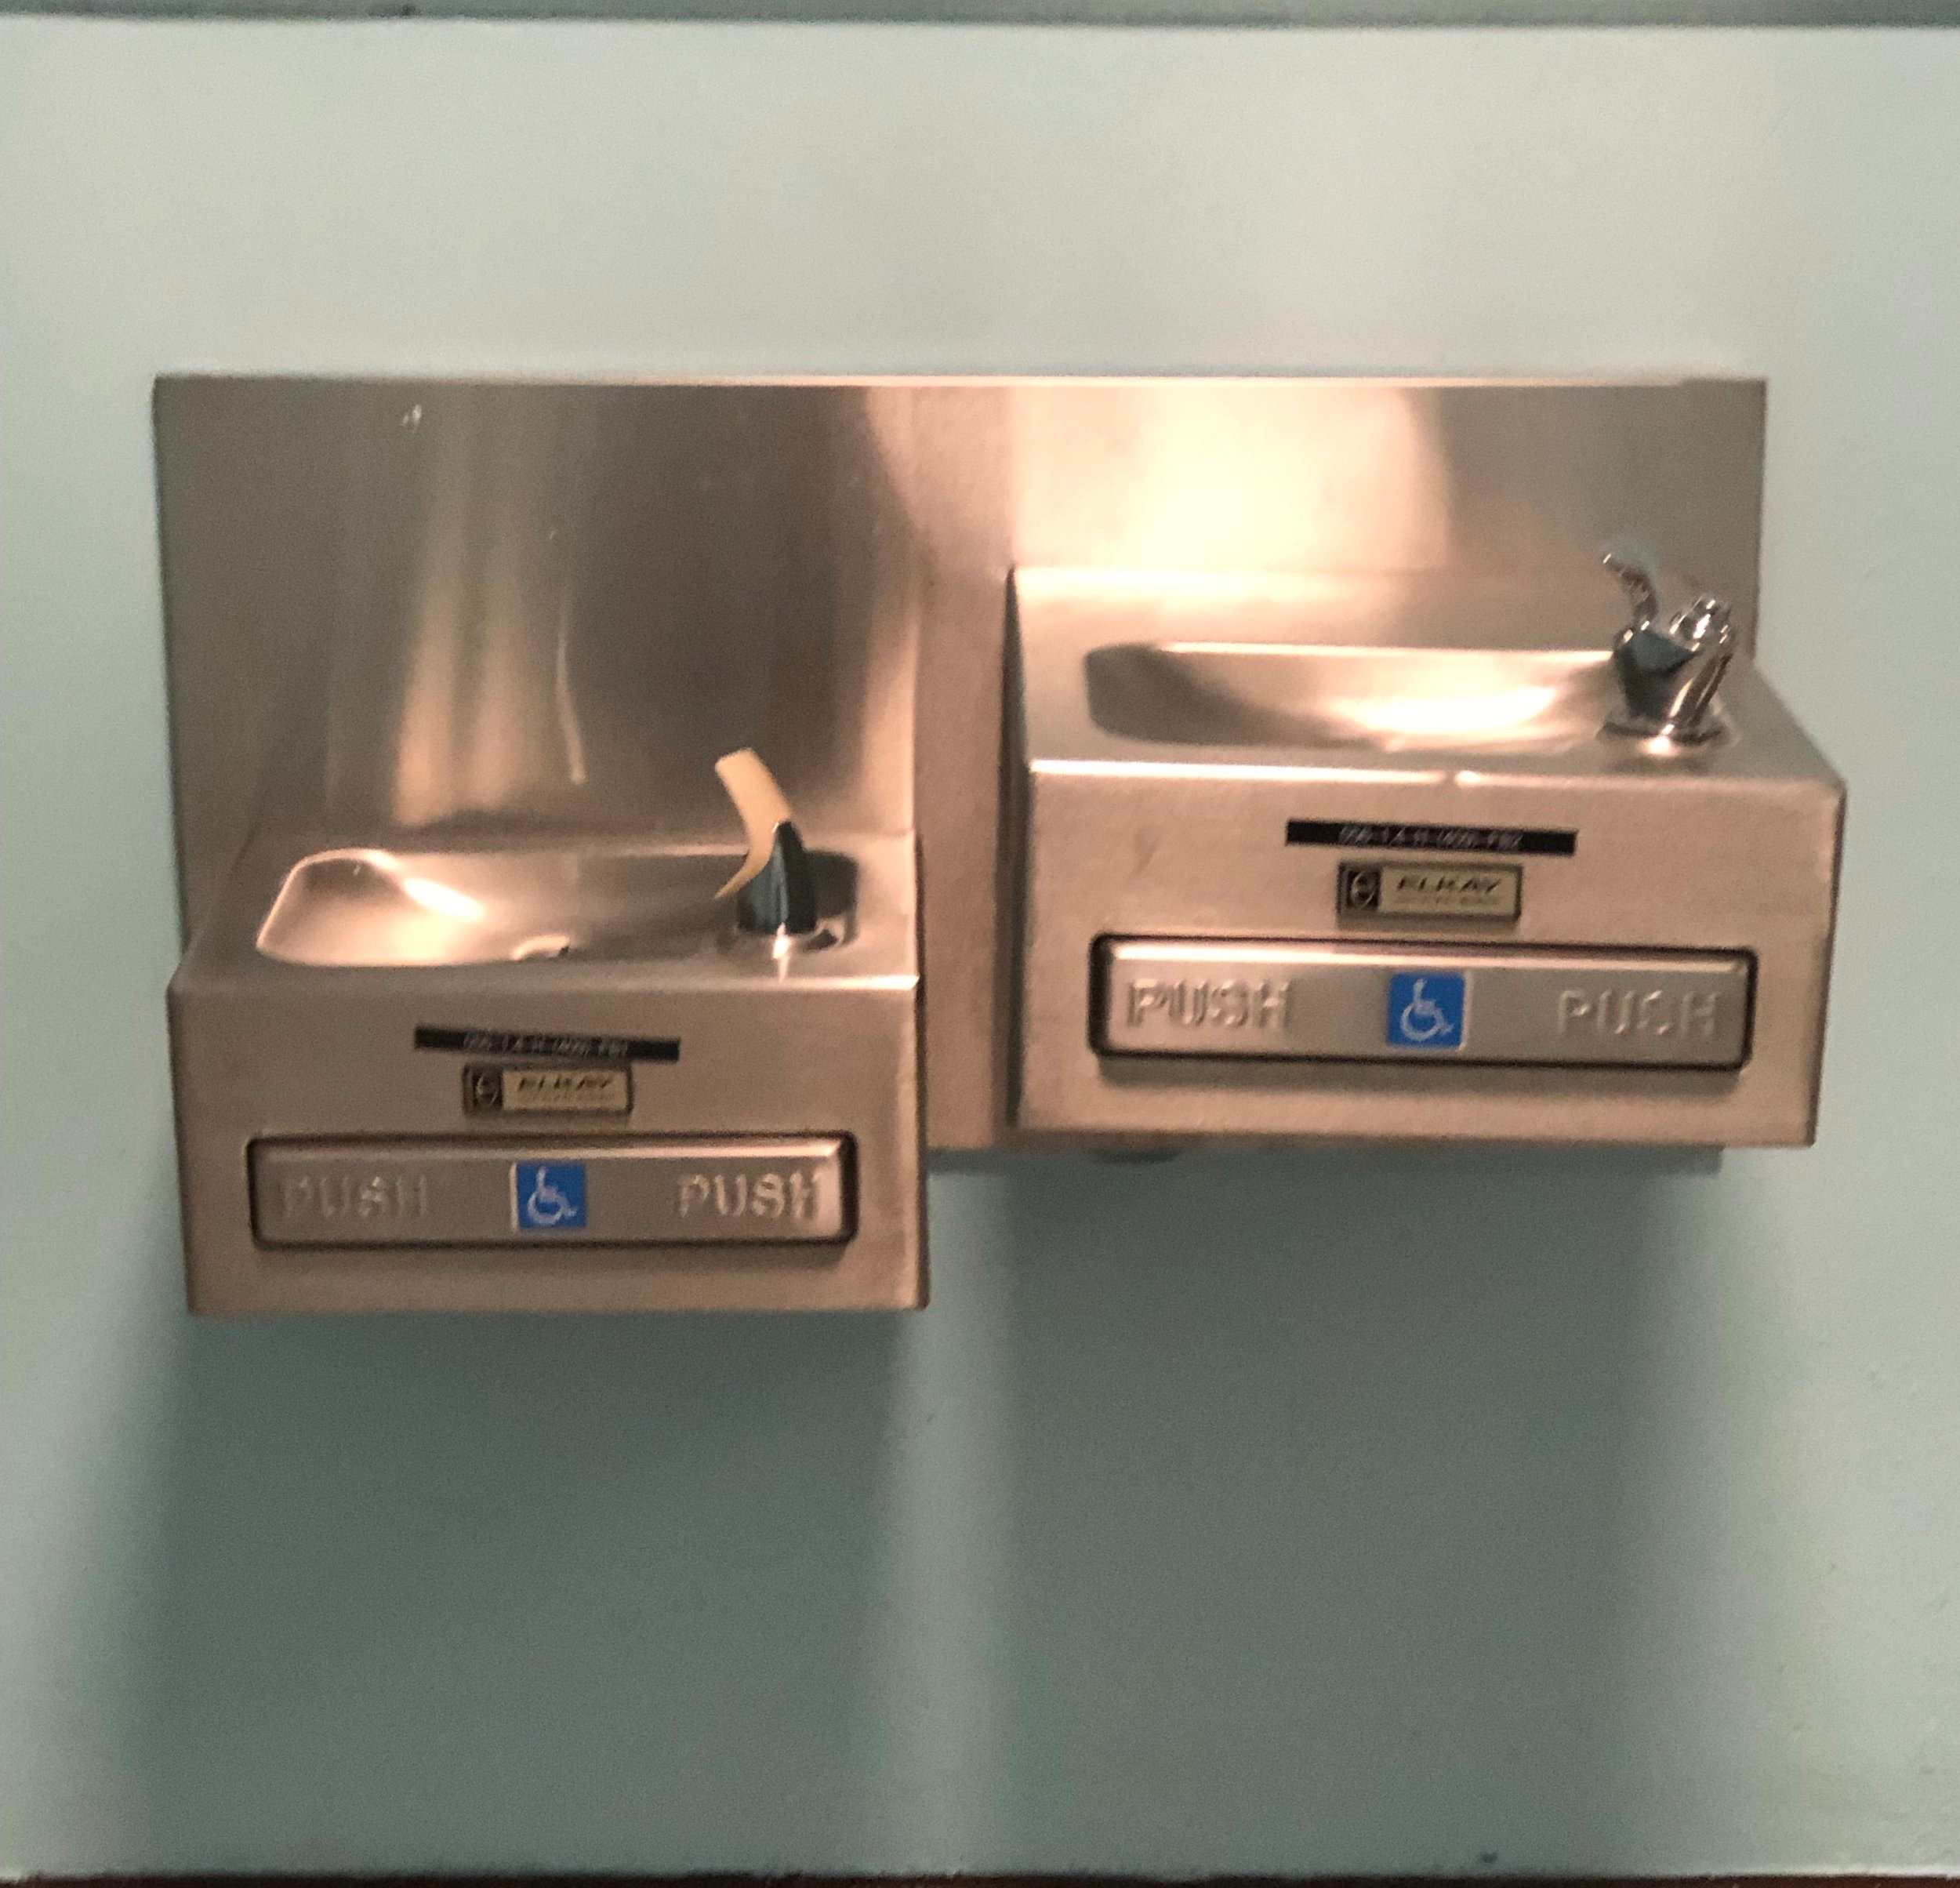 Elkay water fountains at McNair high school that have been turned off indefinitely until the water becomes potable again.